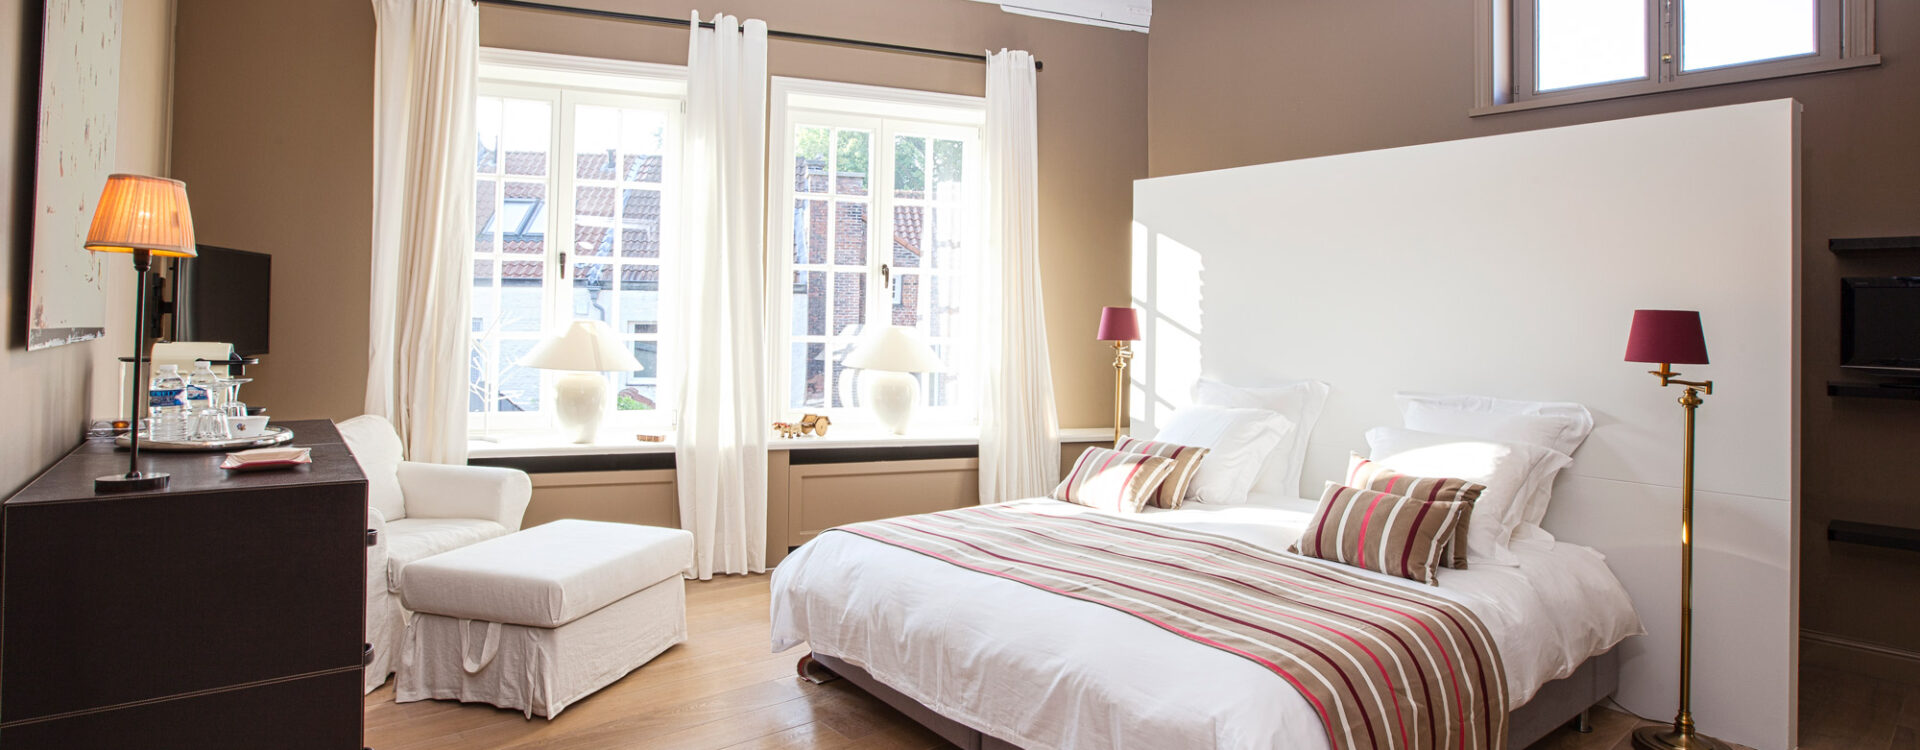 Maison Amodio is a stylishly decorated bed and breakfast in the centre of Bruges where you can have a perfect stay. This is the Biarritz-room.